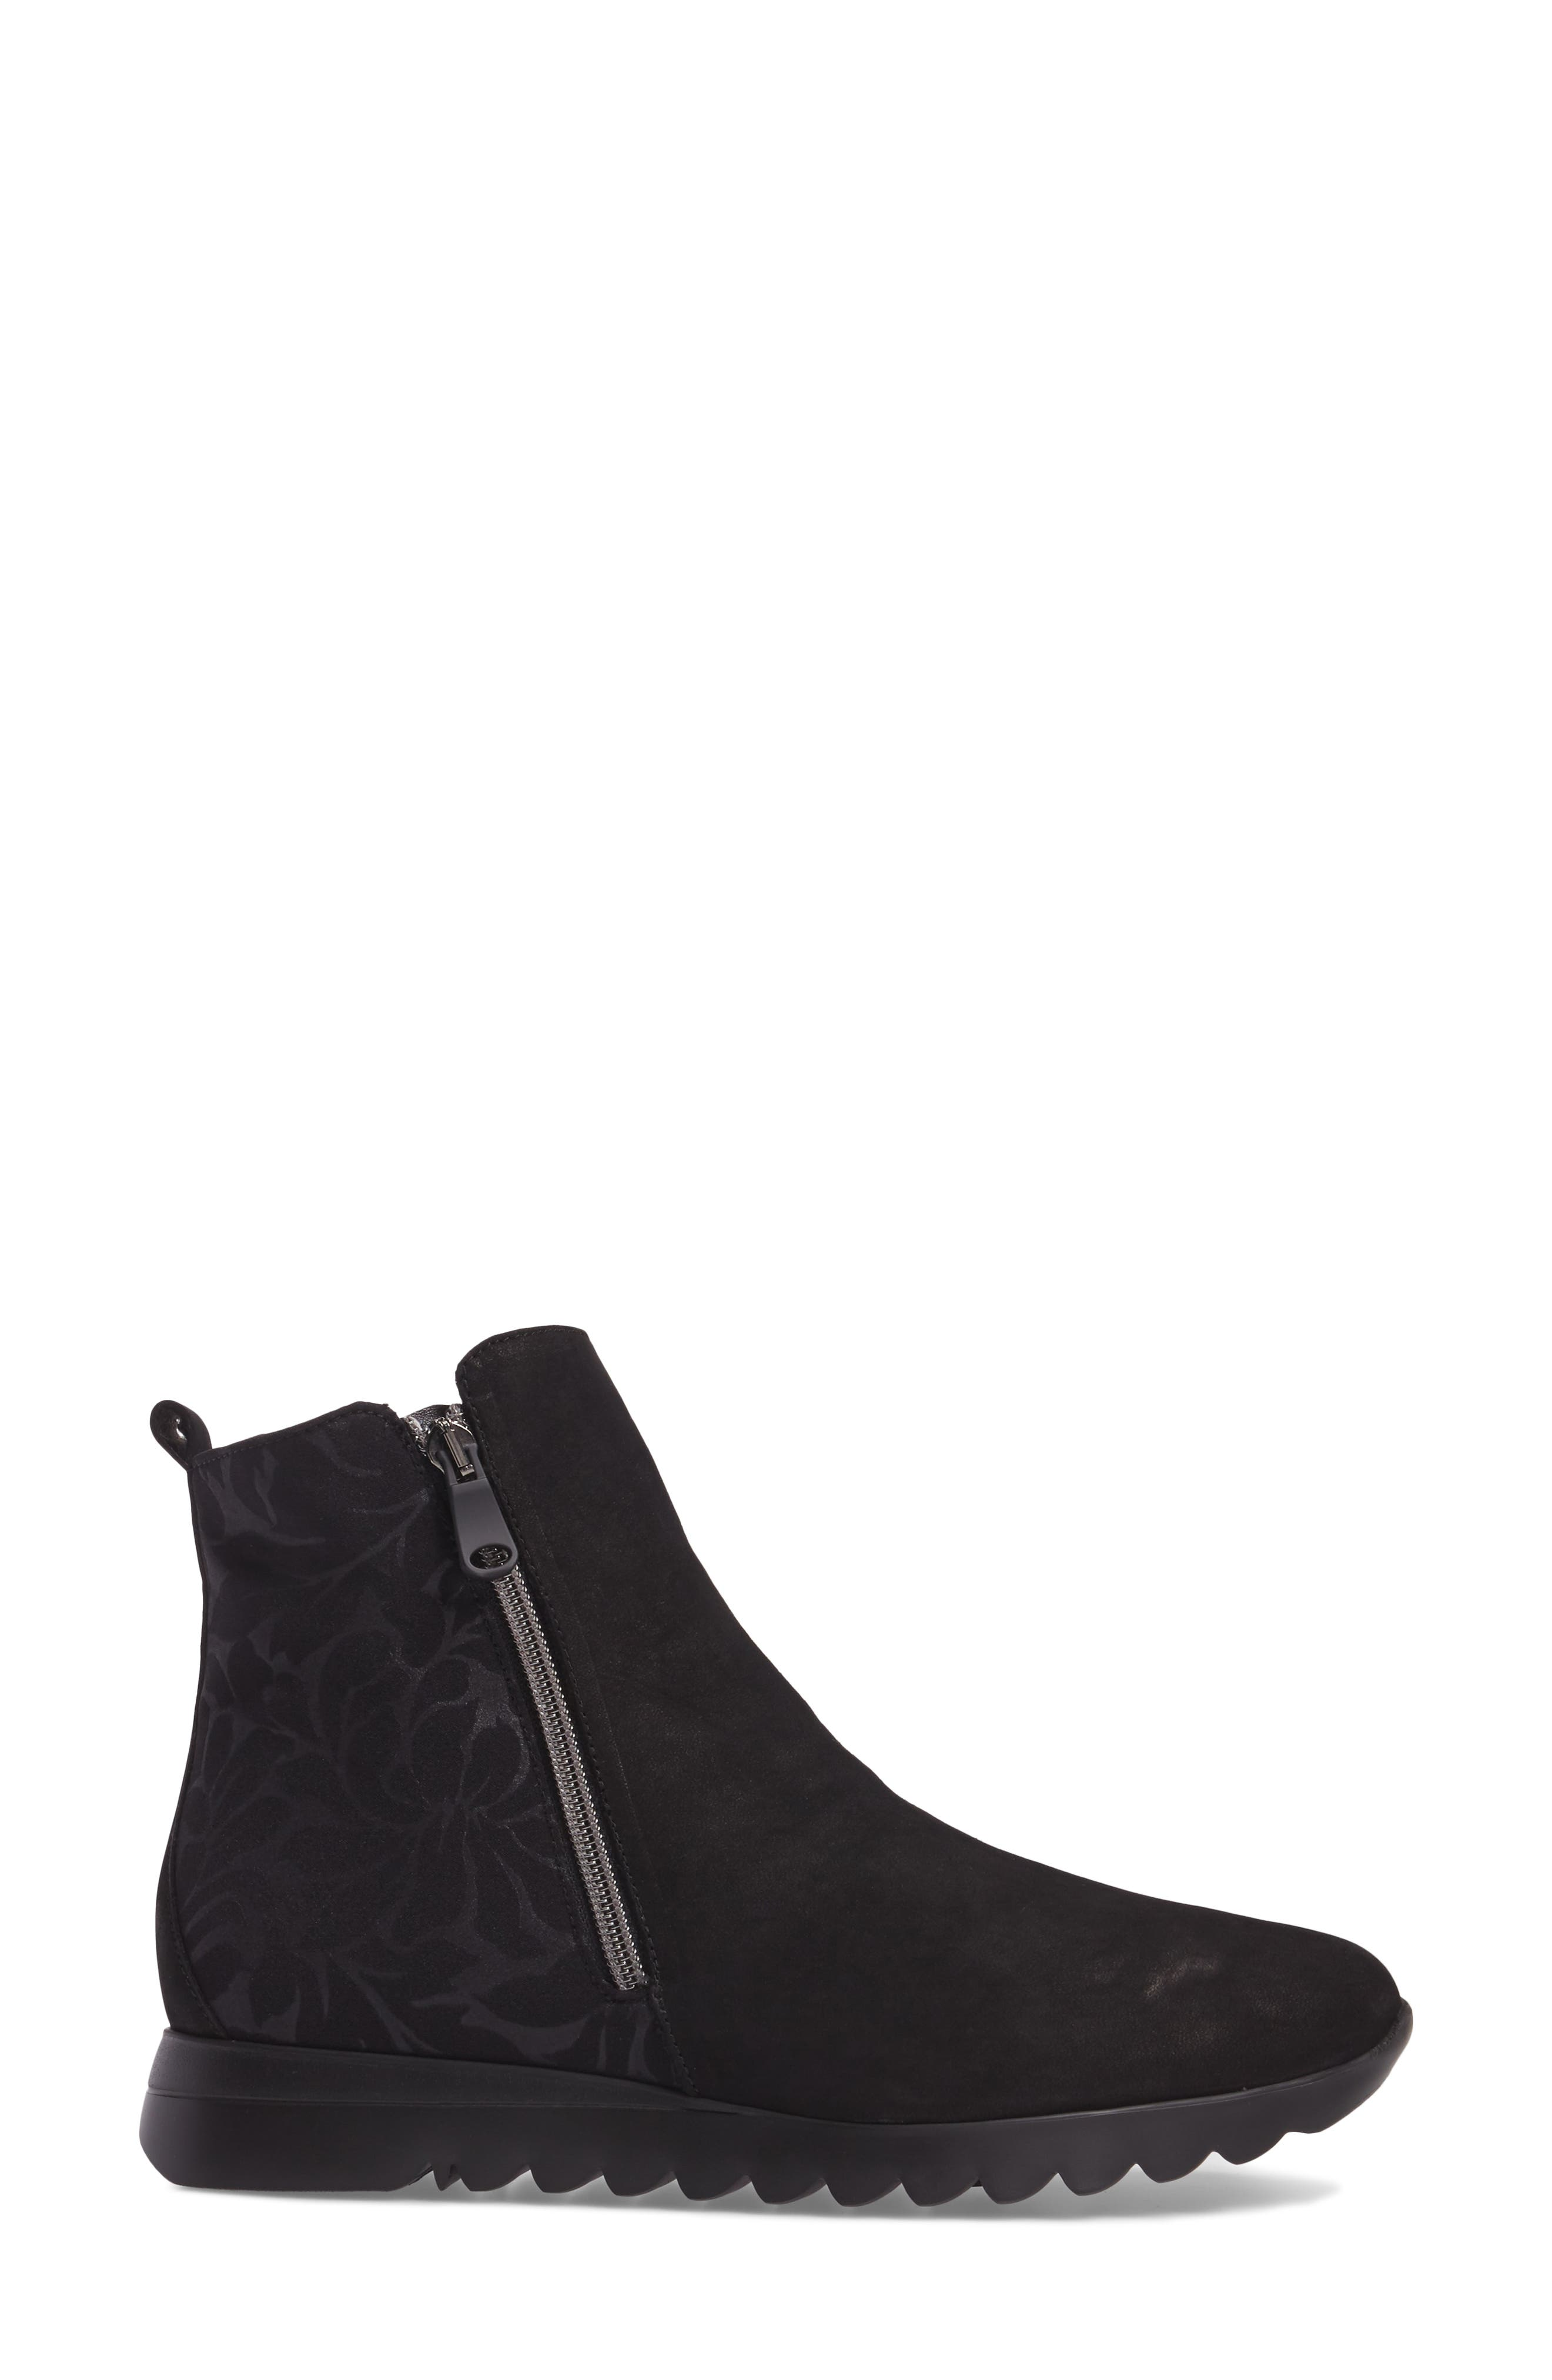 MUNRO, Ashcroft Bootie, Alternate thumbnail 3, color, BLACK NUBUCK